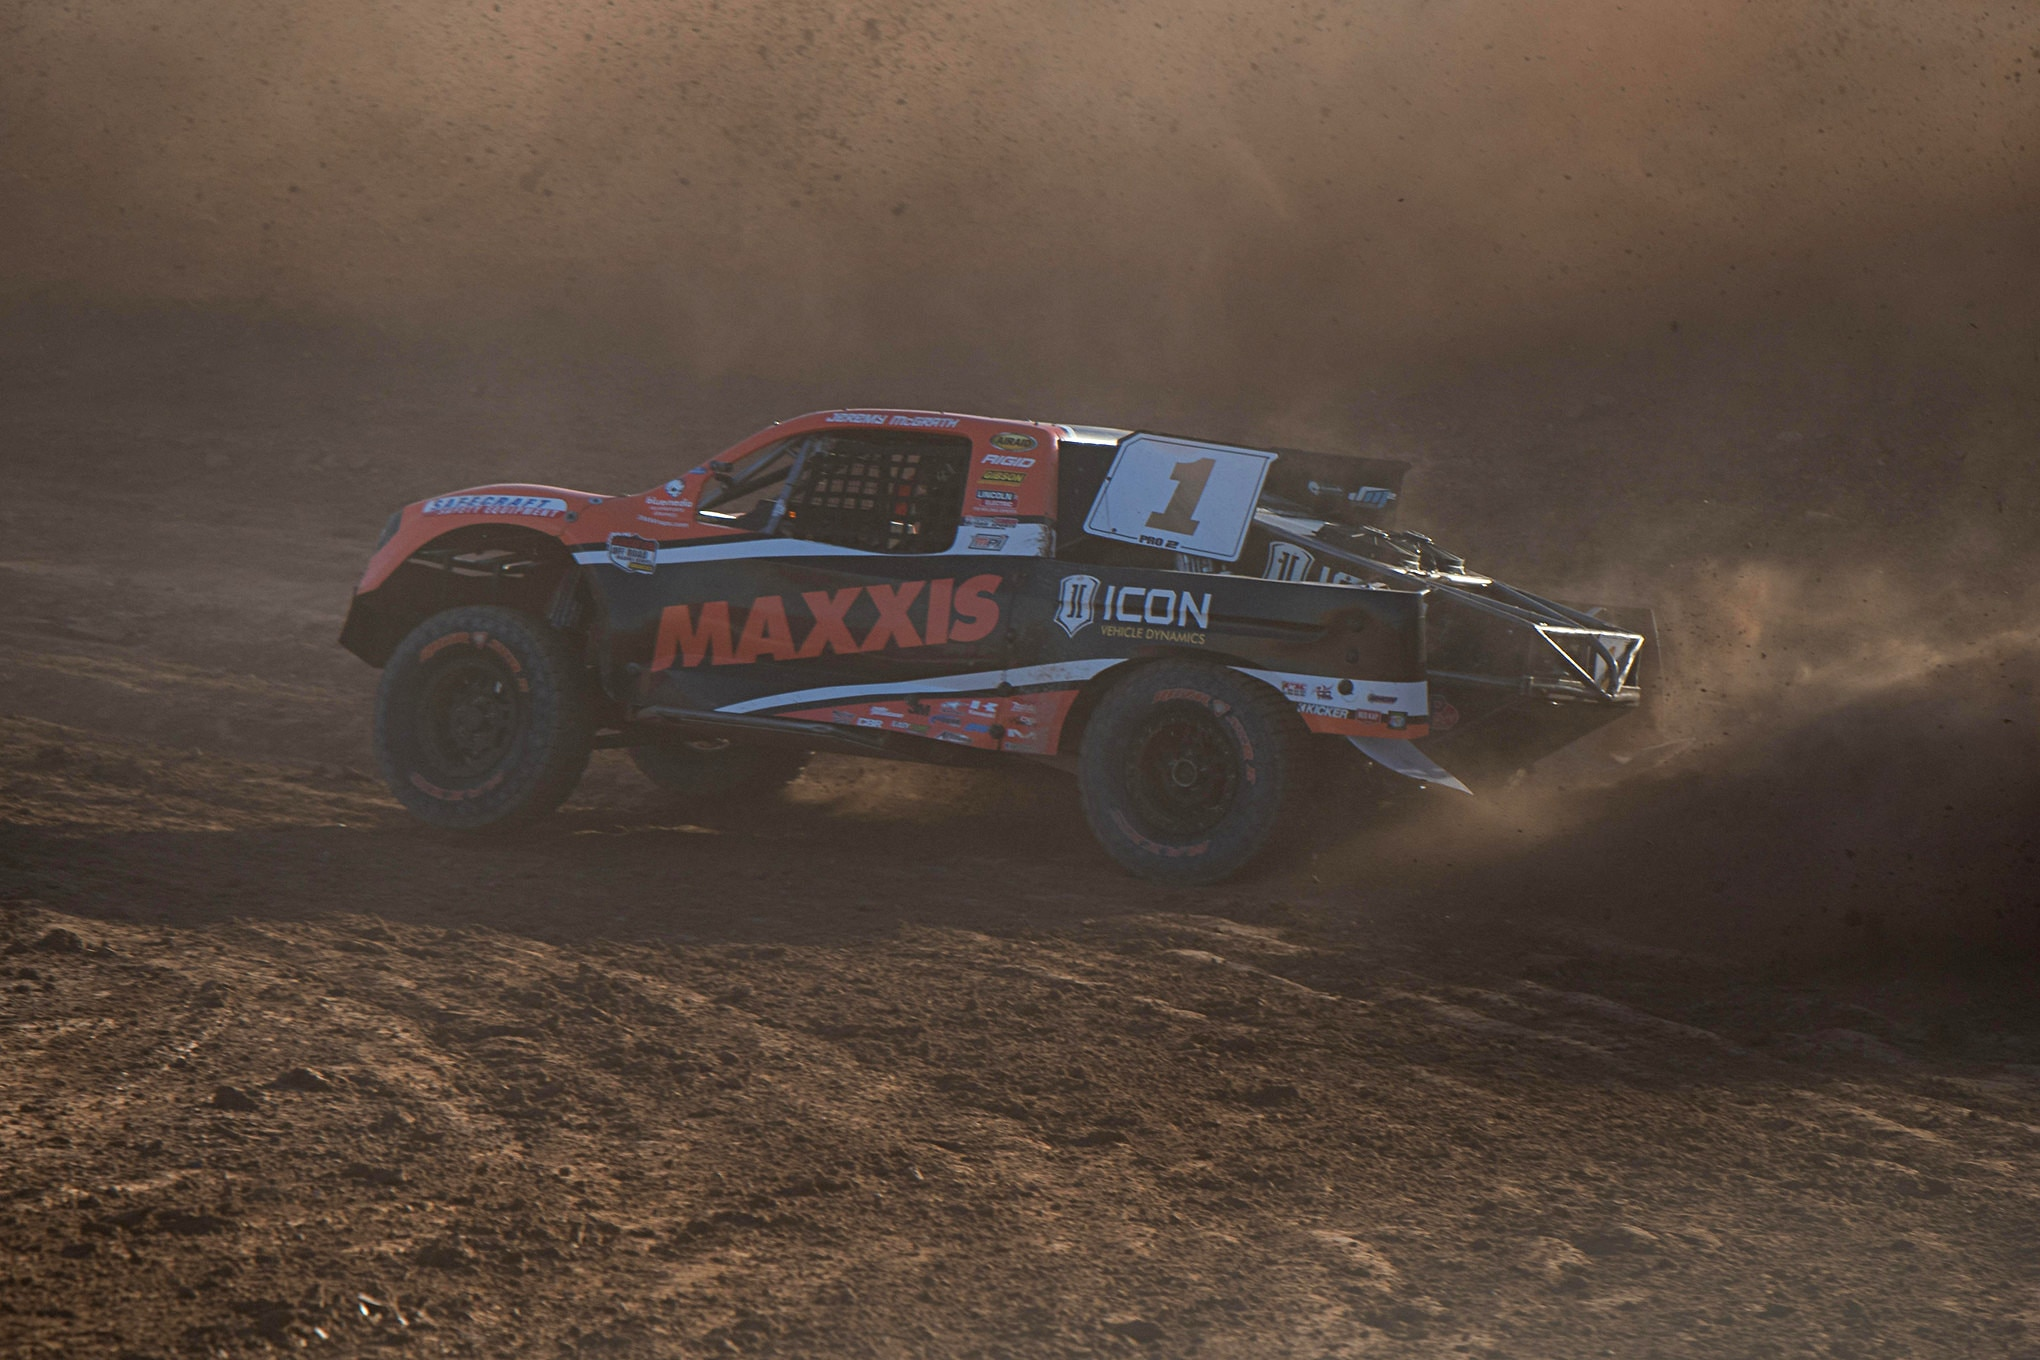 """Jeremy McGrath (2) on route to his first Pro 2 Championship. Since starting his journey back in 2010, McGrath has put in the time and steadily progessed from """"another mx guy racing trucks"""" to being in the hunt to now winning the 2017 LOORRS Pro2 Championship. We congratulate him on this, his latest in a long line of national championships."""